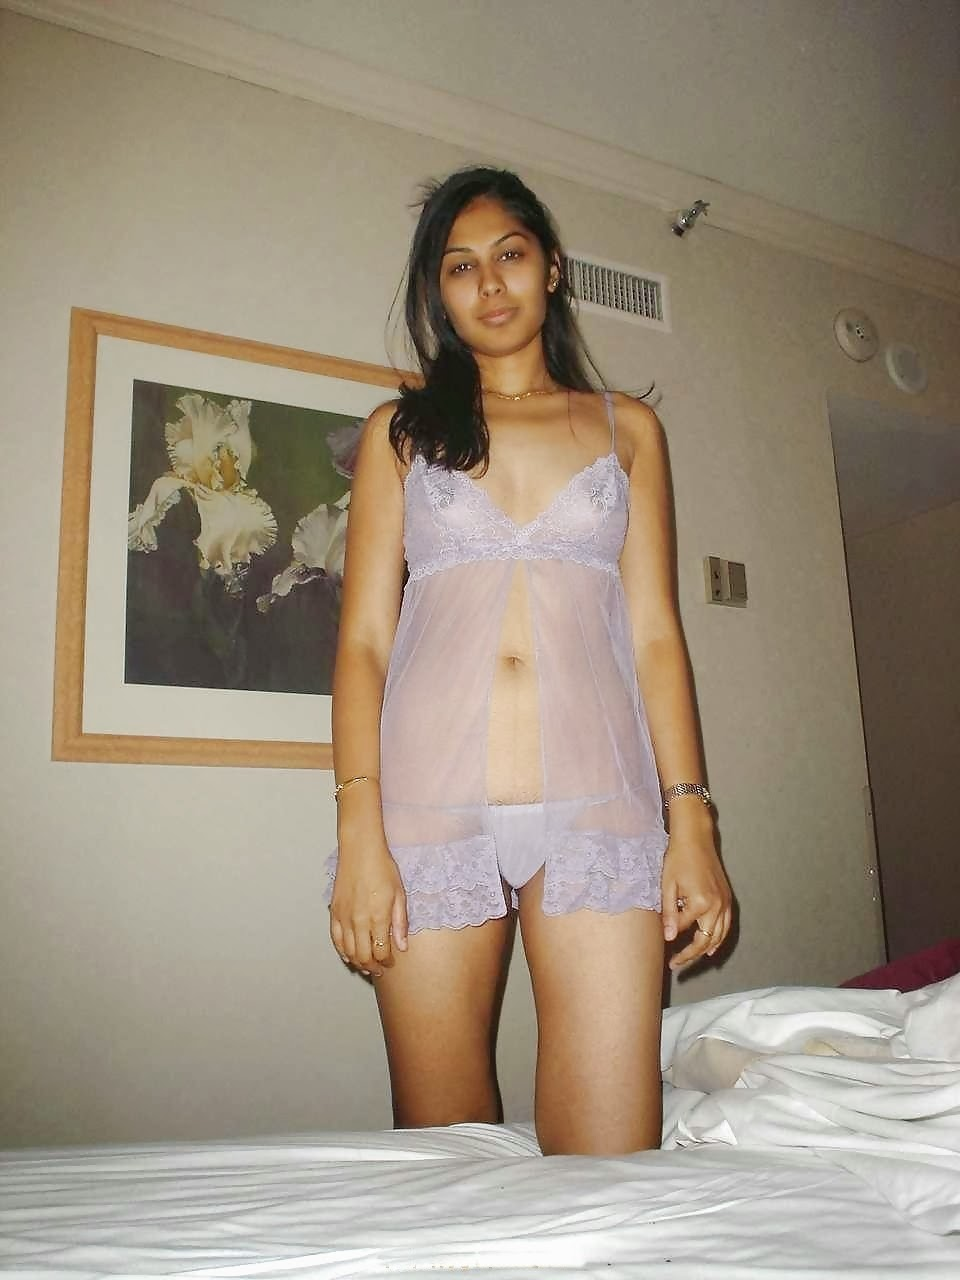 Hot Nri Teen Naked And Blowjob Pics indianudesi.com